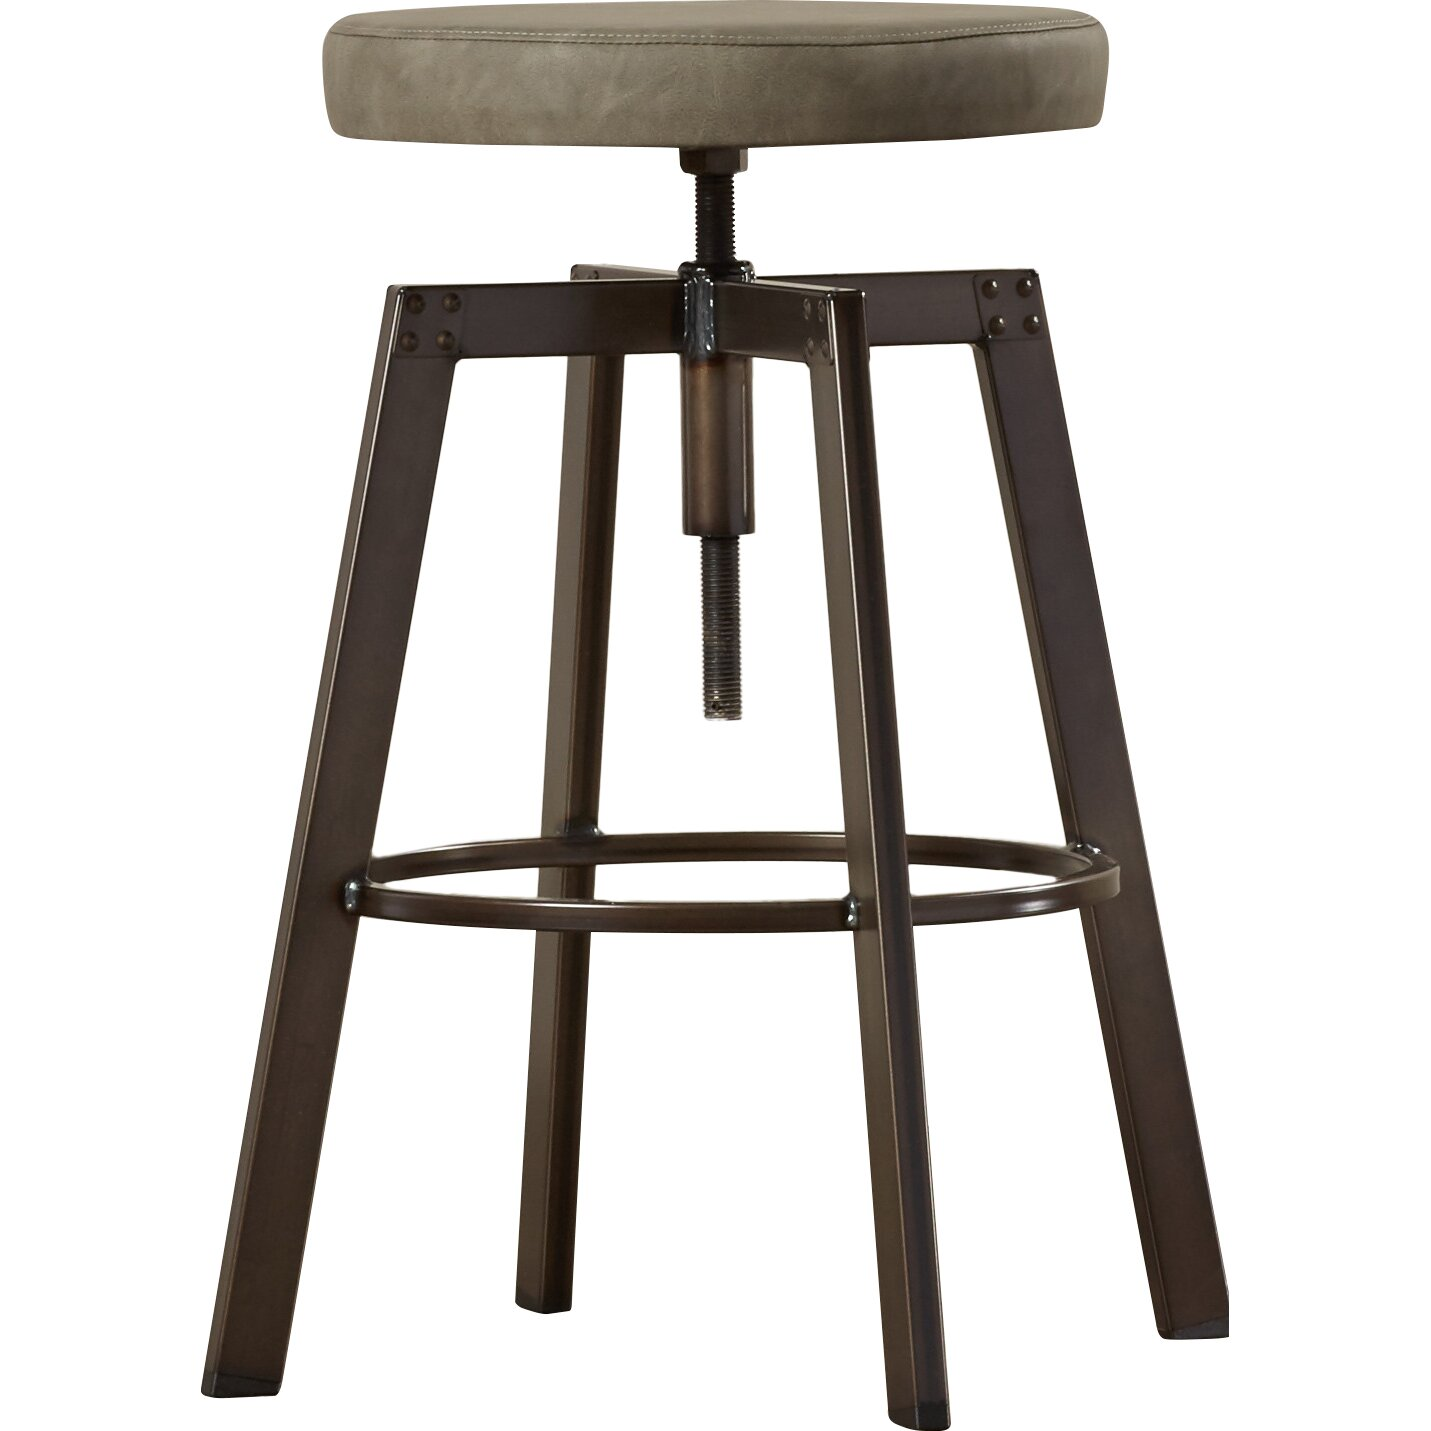 #382F27 Trent Austin Design Chasewych Adjustable Height Bar Stool Wayfair with 1431x1431 px of Recommended Tall Bar Bench 14311431 save image @ avoidforclosure.info